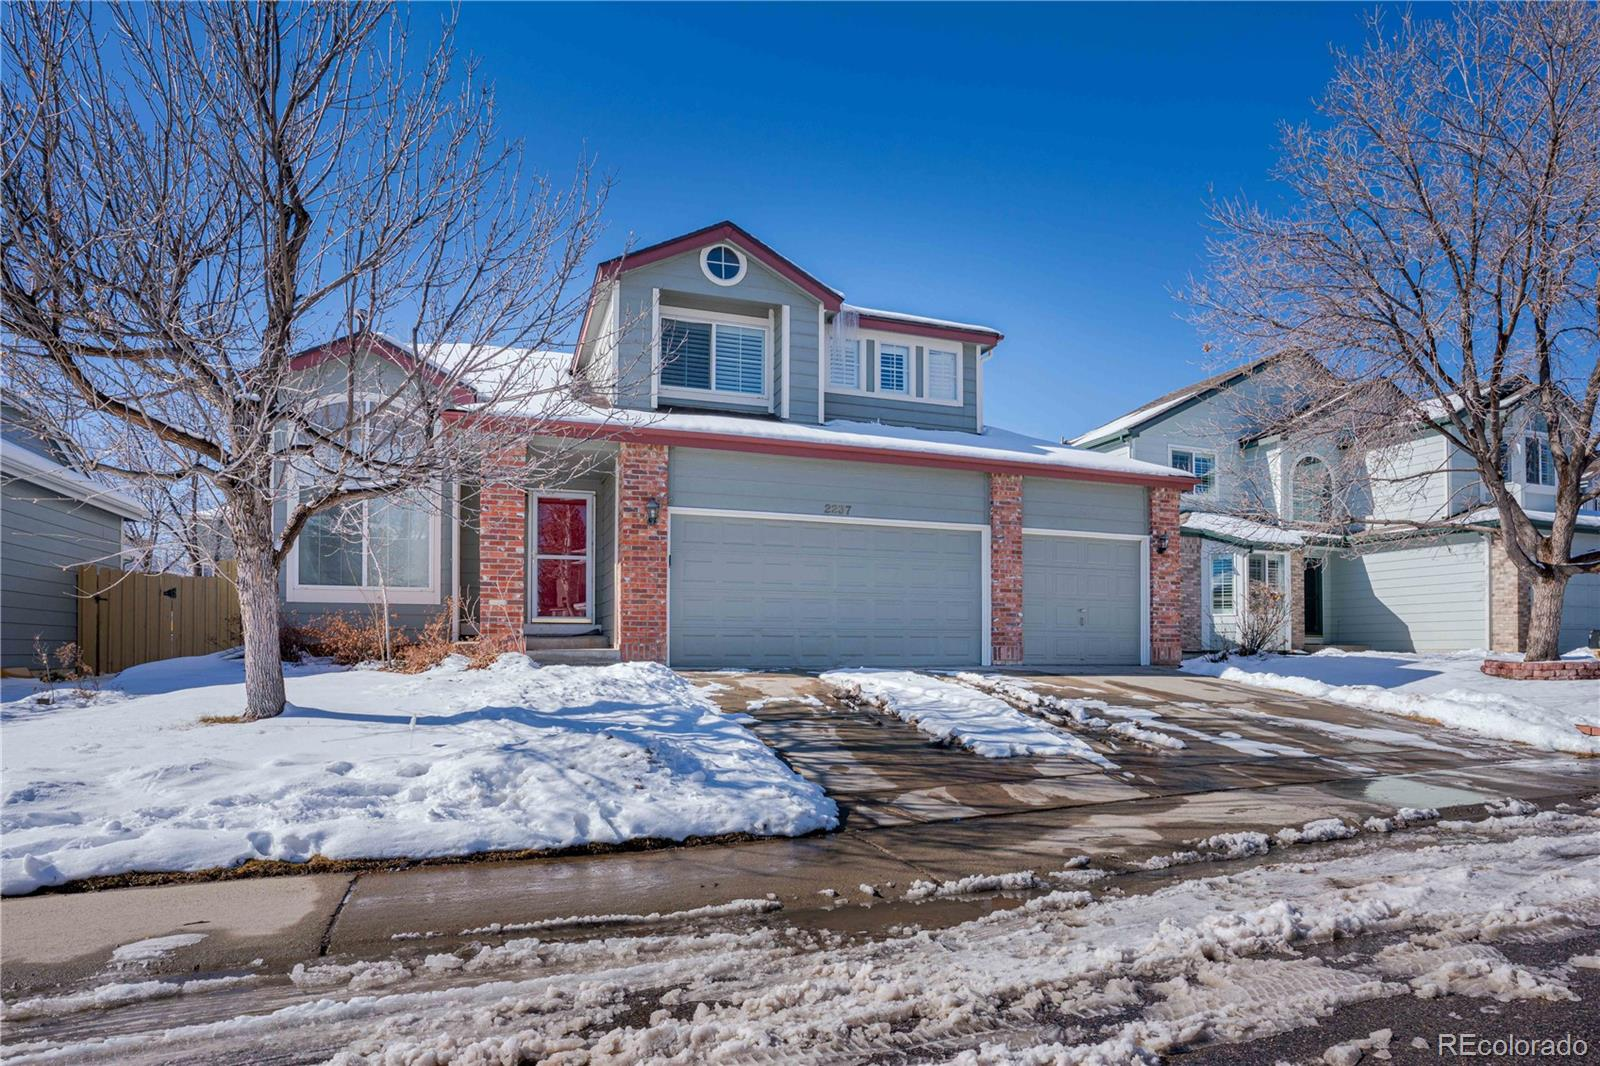 MLS# 6435720 - 2 - 2237 E Holyoke Lane, Superior, CO 80027